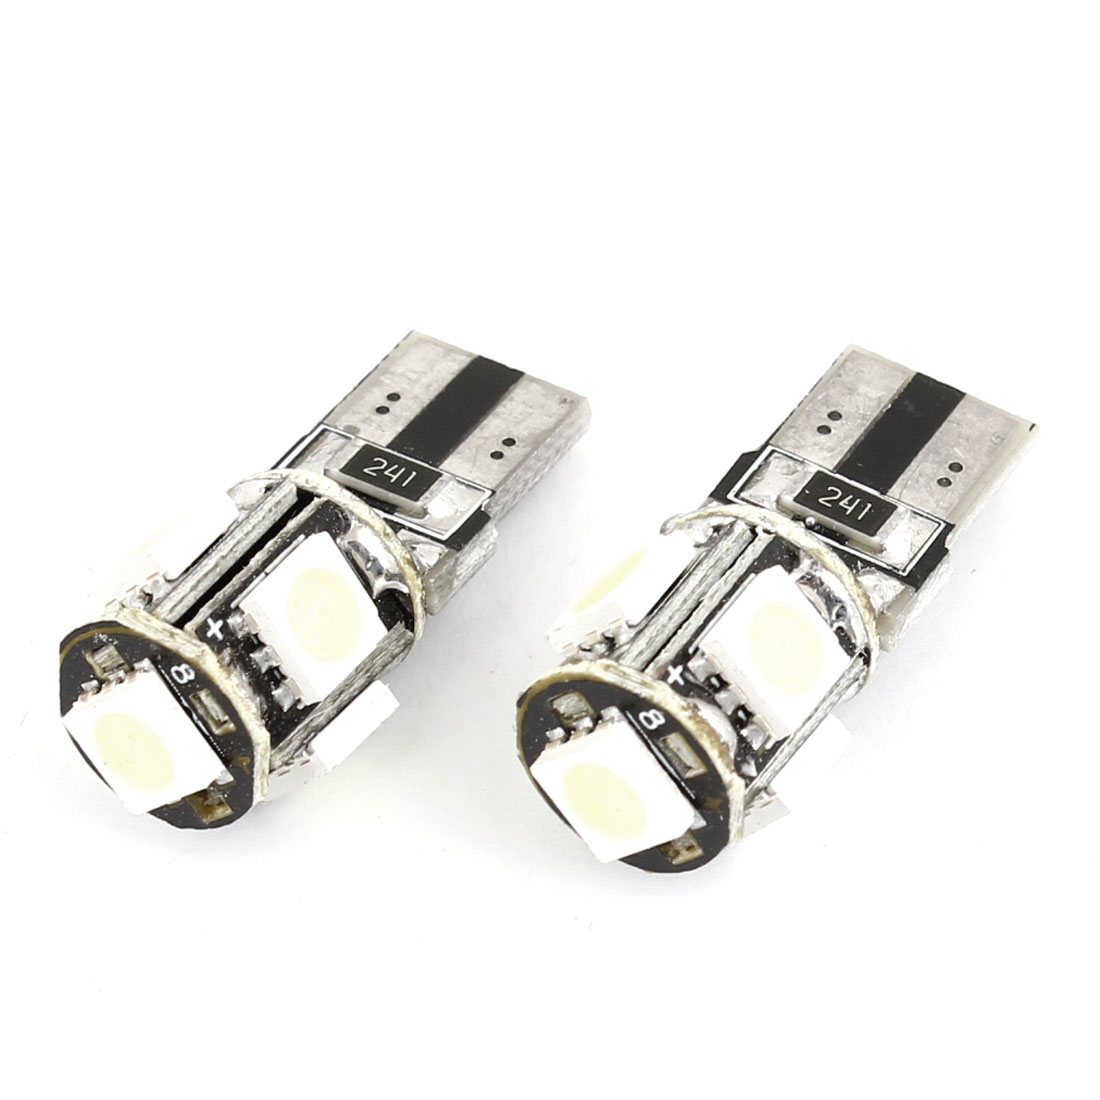 2PCS Car T10 5 Ice Blue LEDs 5050 SMD Canbus Error Free LED Light Lamp Bulbs